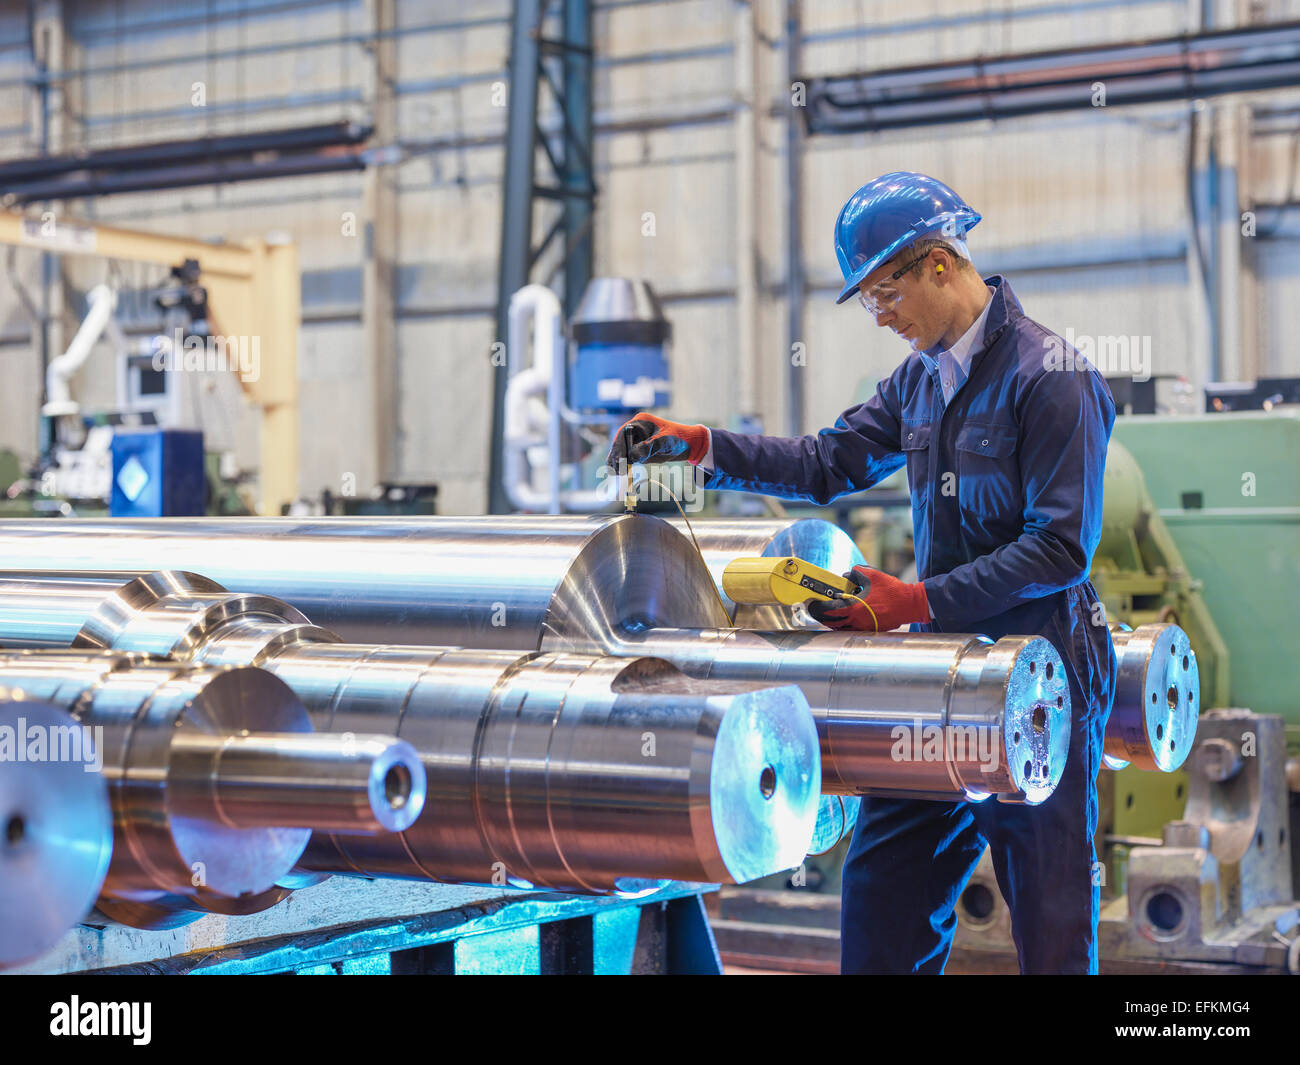 Engineer inspecting finished steel rollers in engineering factory - Stock Image